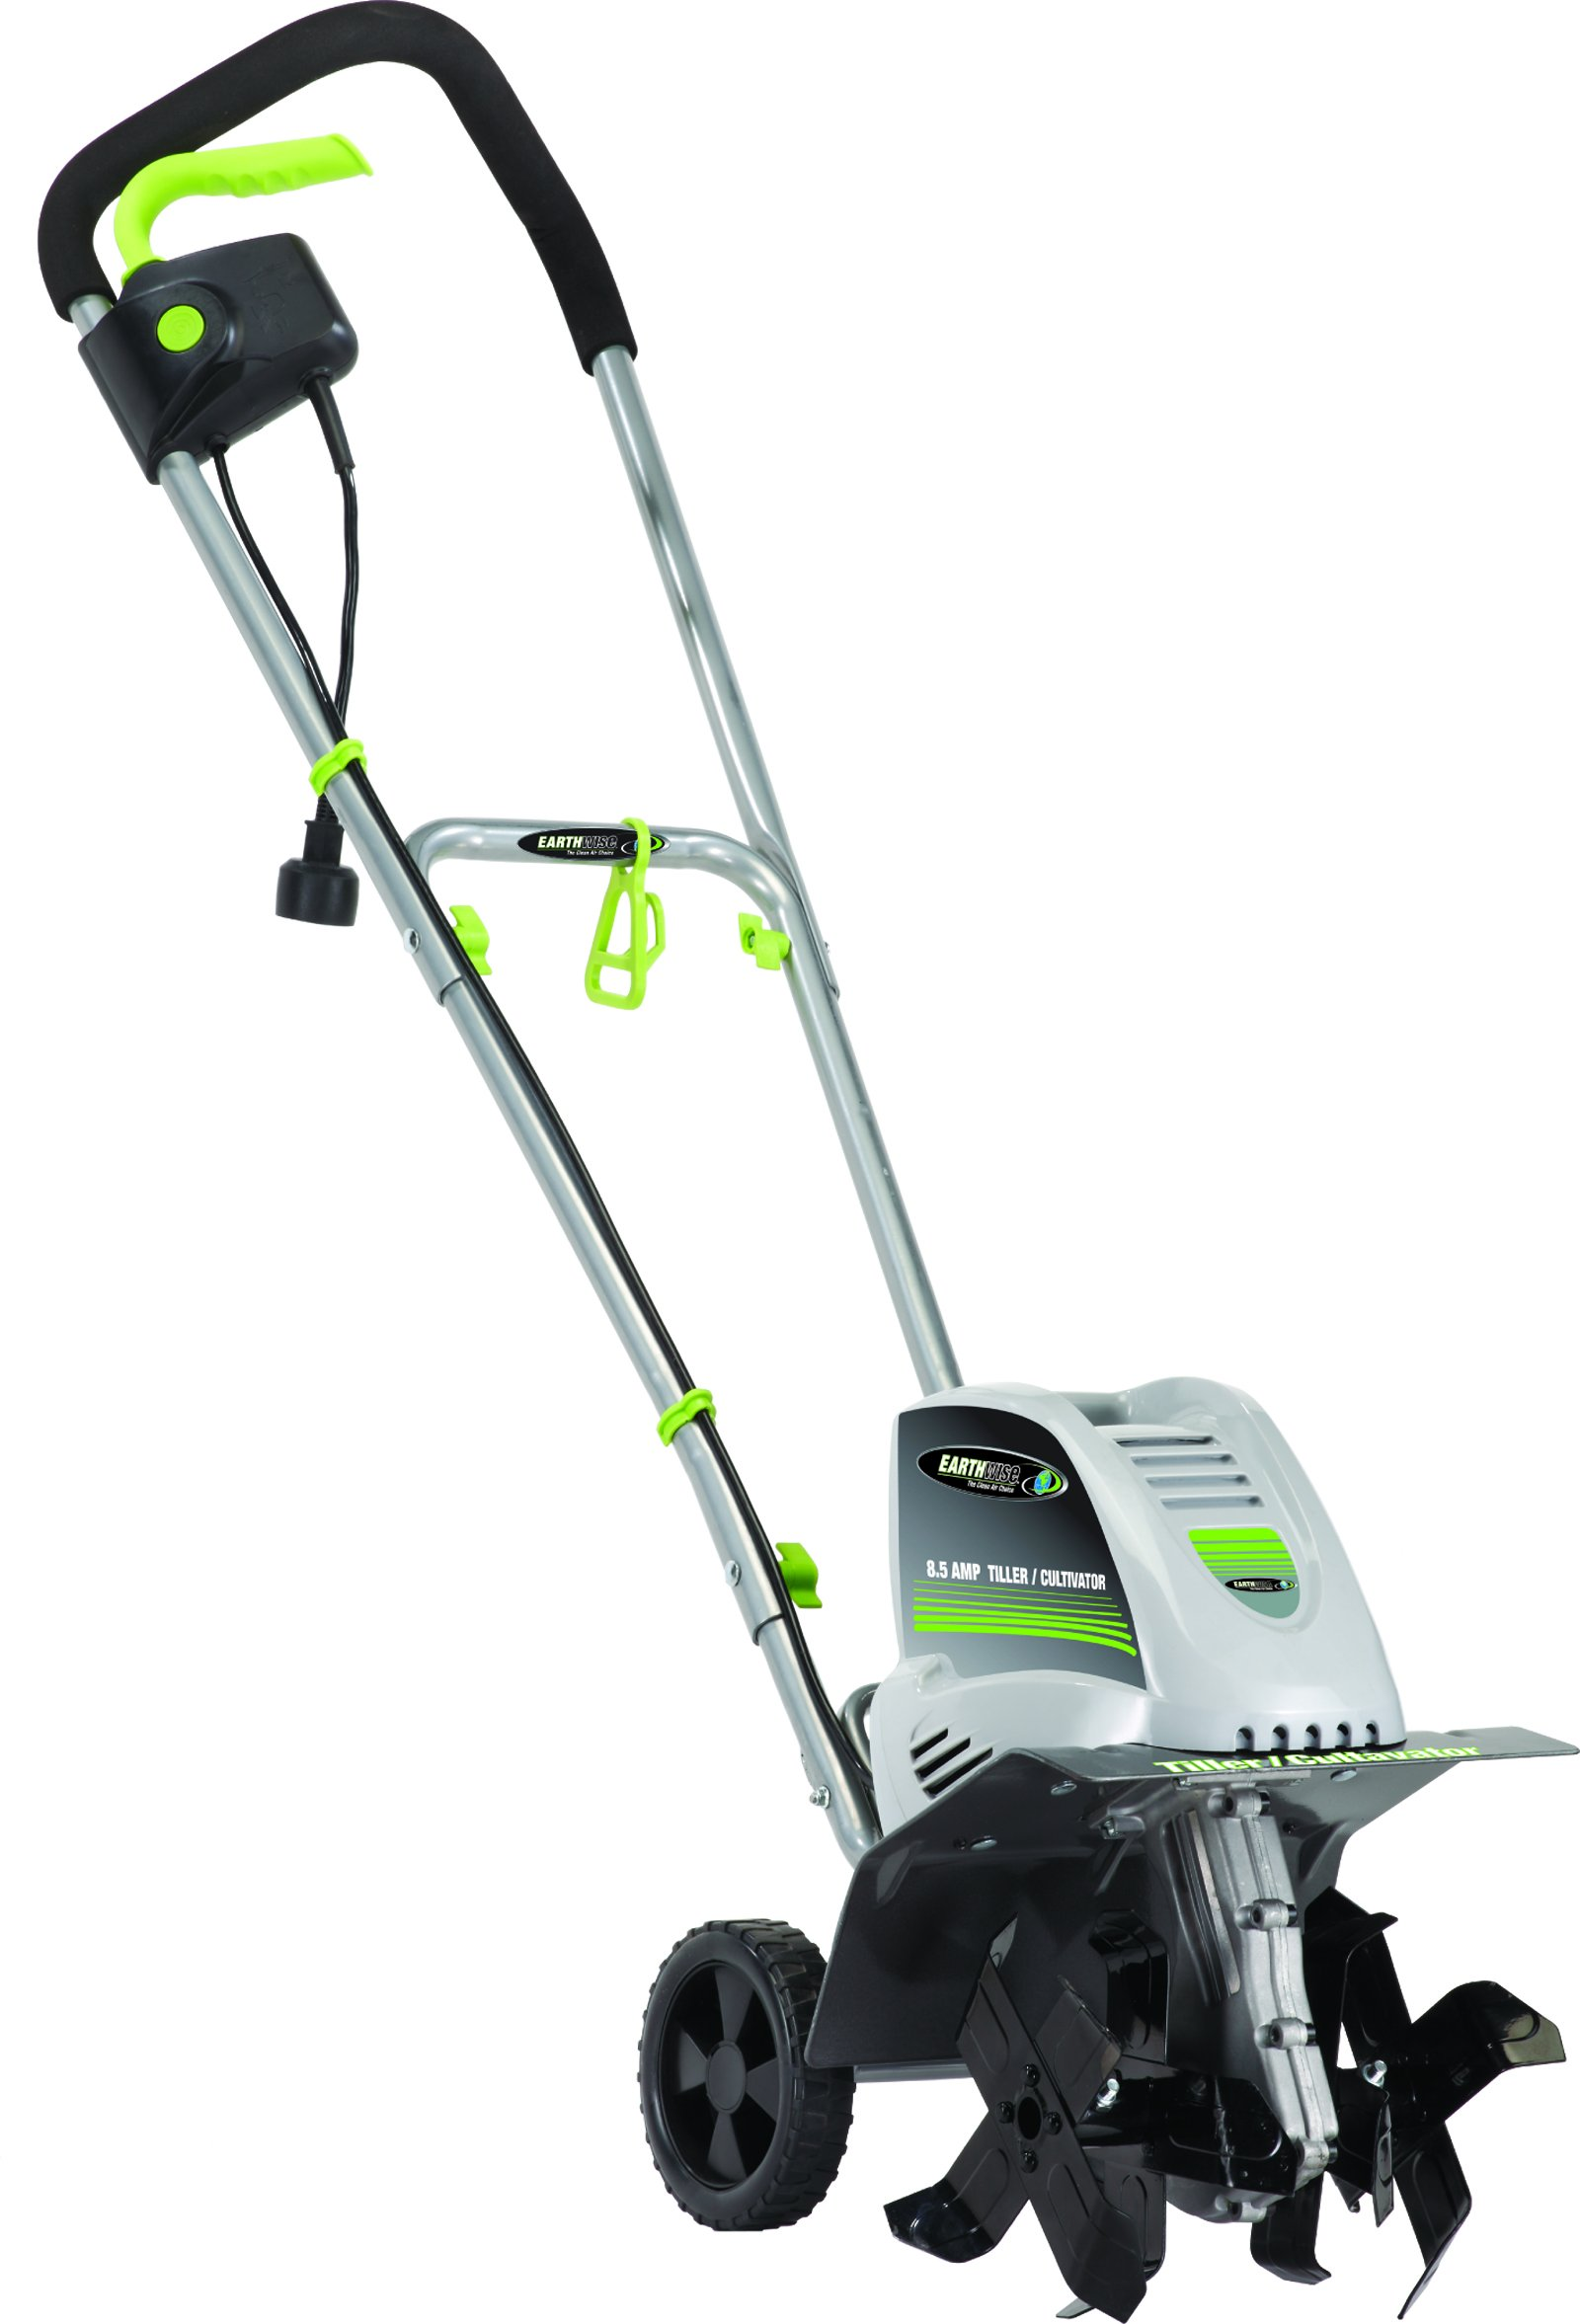 Earthwise TC70001 11-Inch 8.5-Amp Corded Electric Tiller/Cultivator by Earthwise